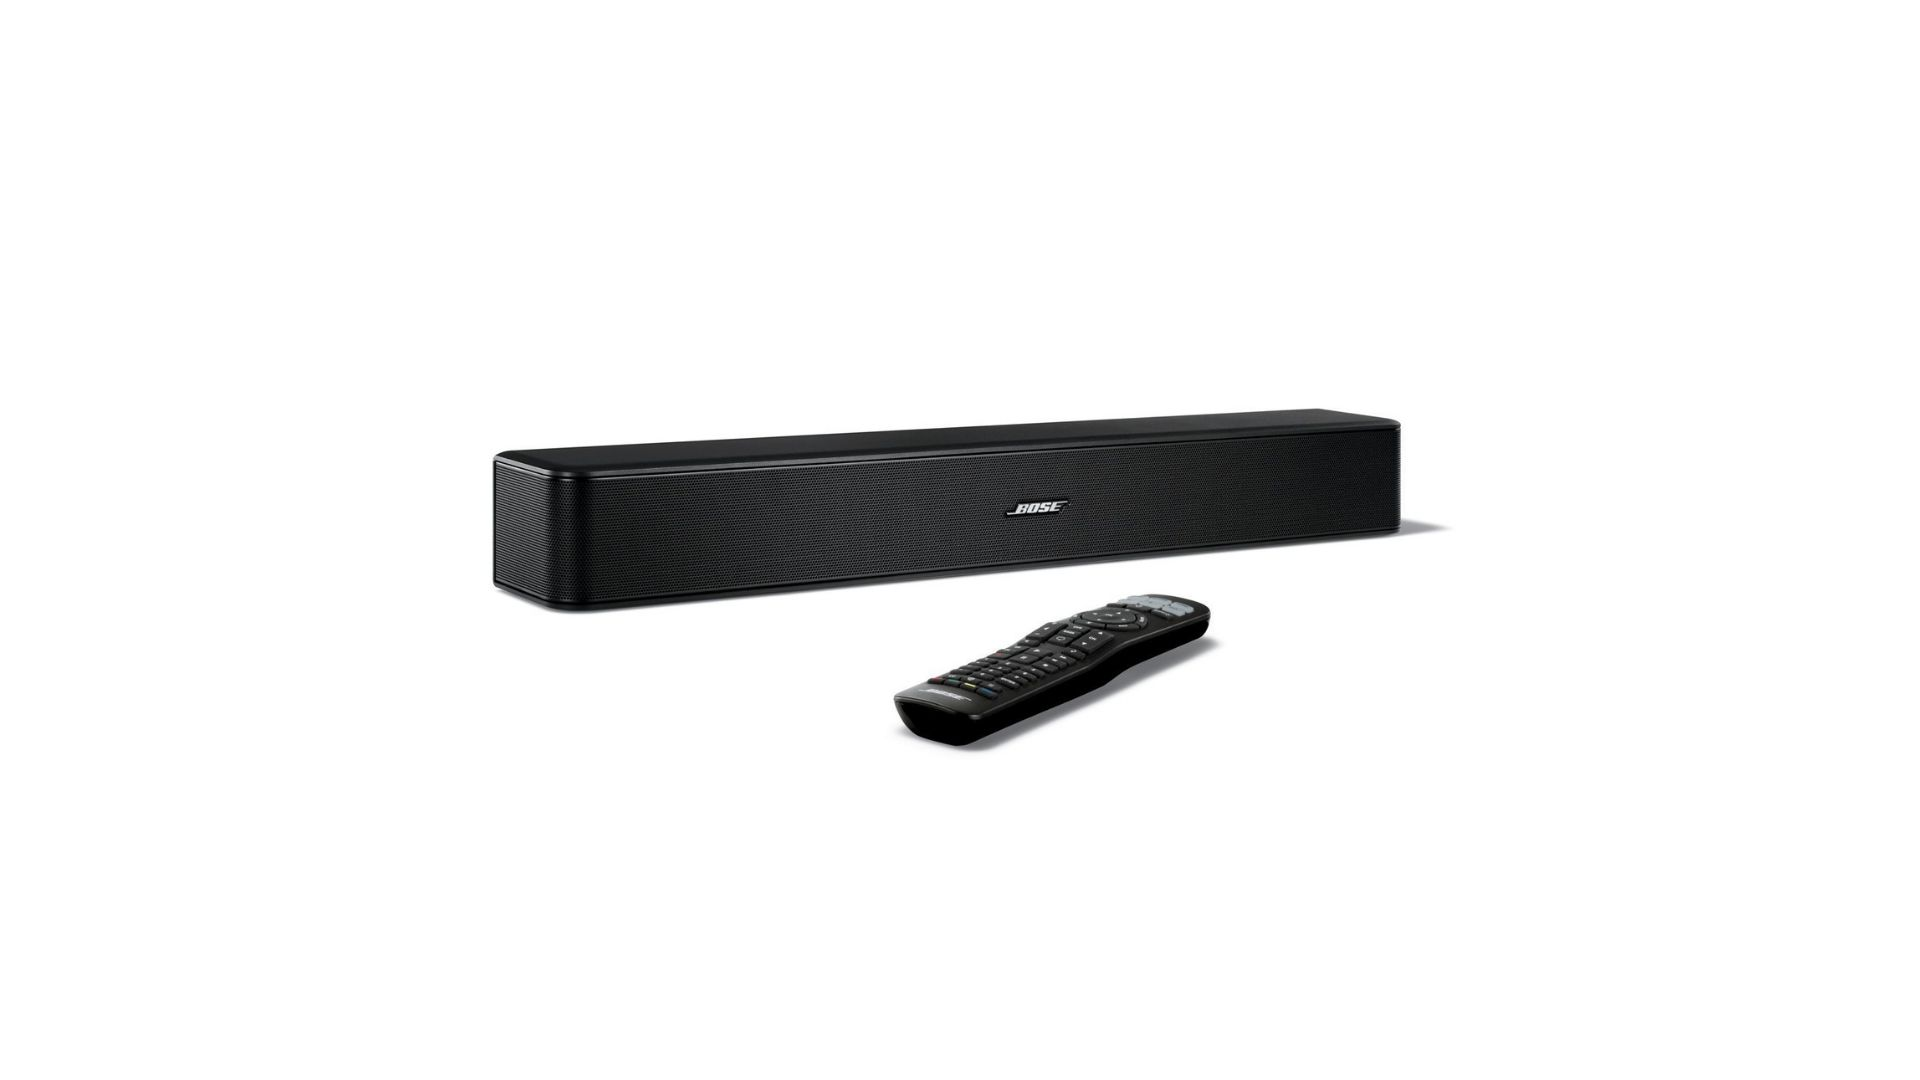 Best Soundbar under 200 - Bose Solo 5 TV Sound System with Universal Remote Control